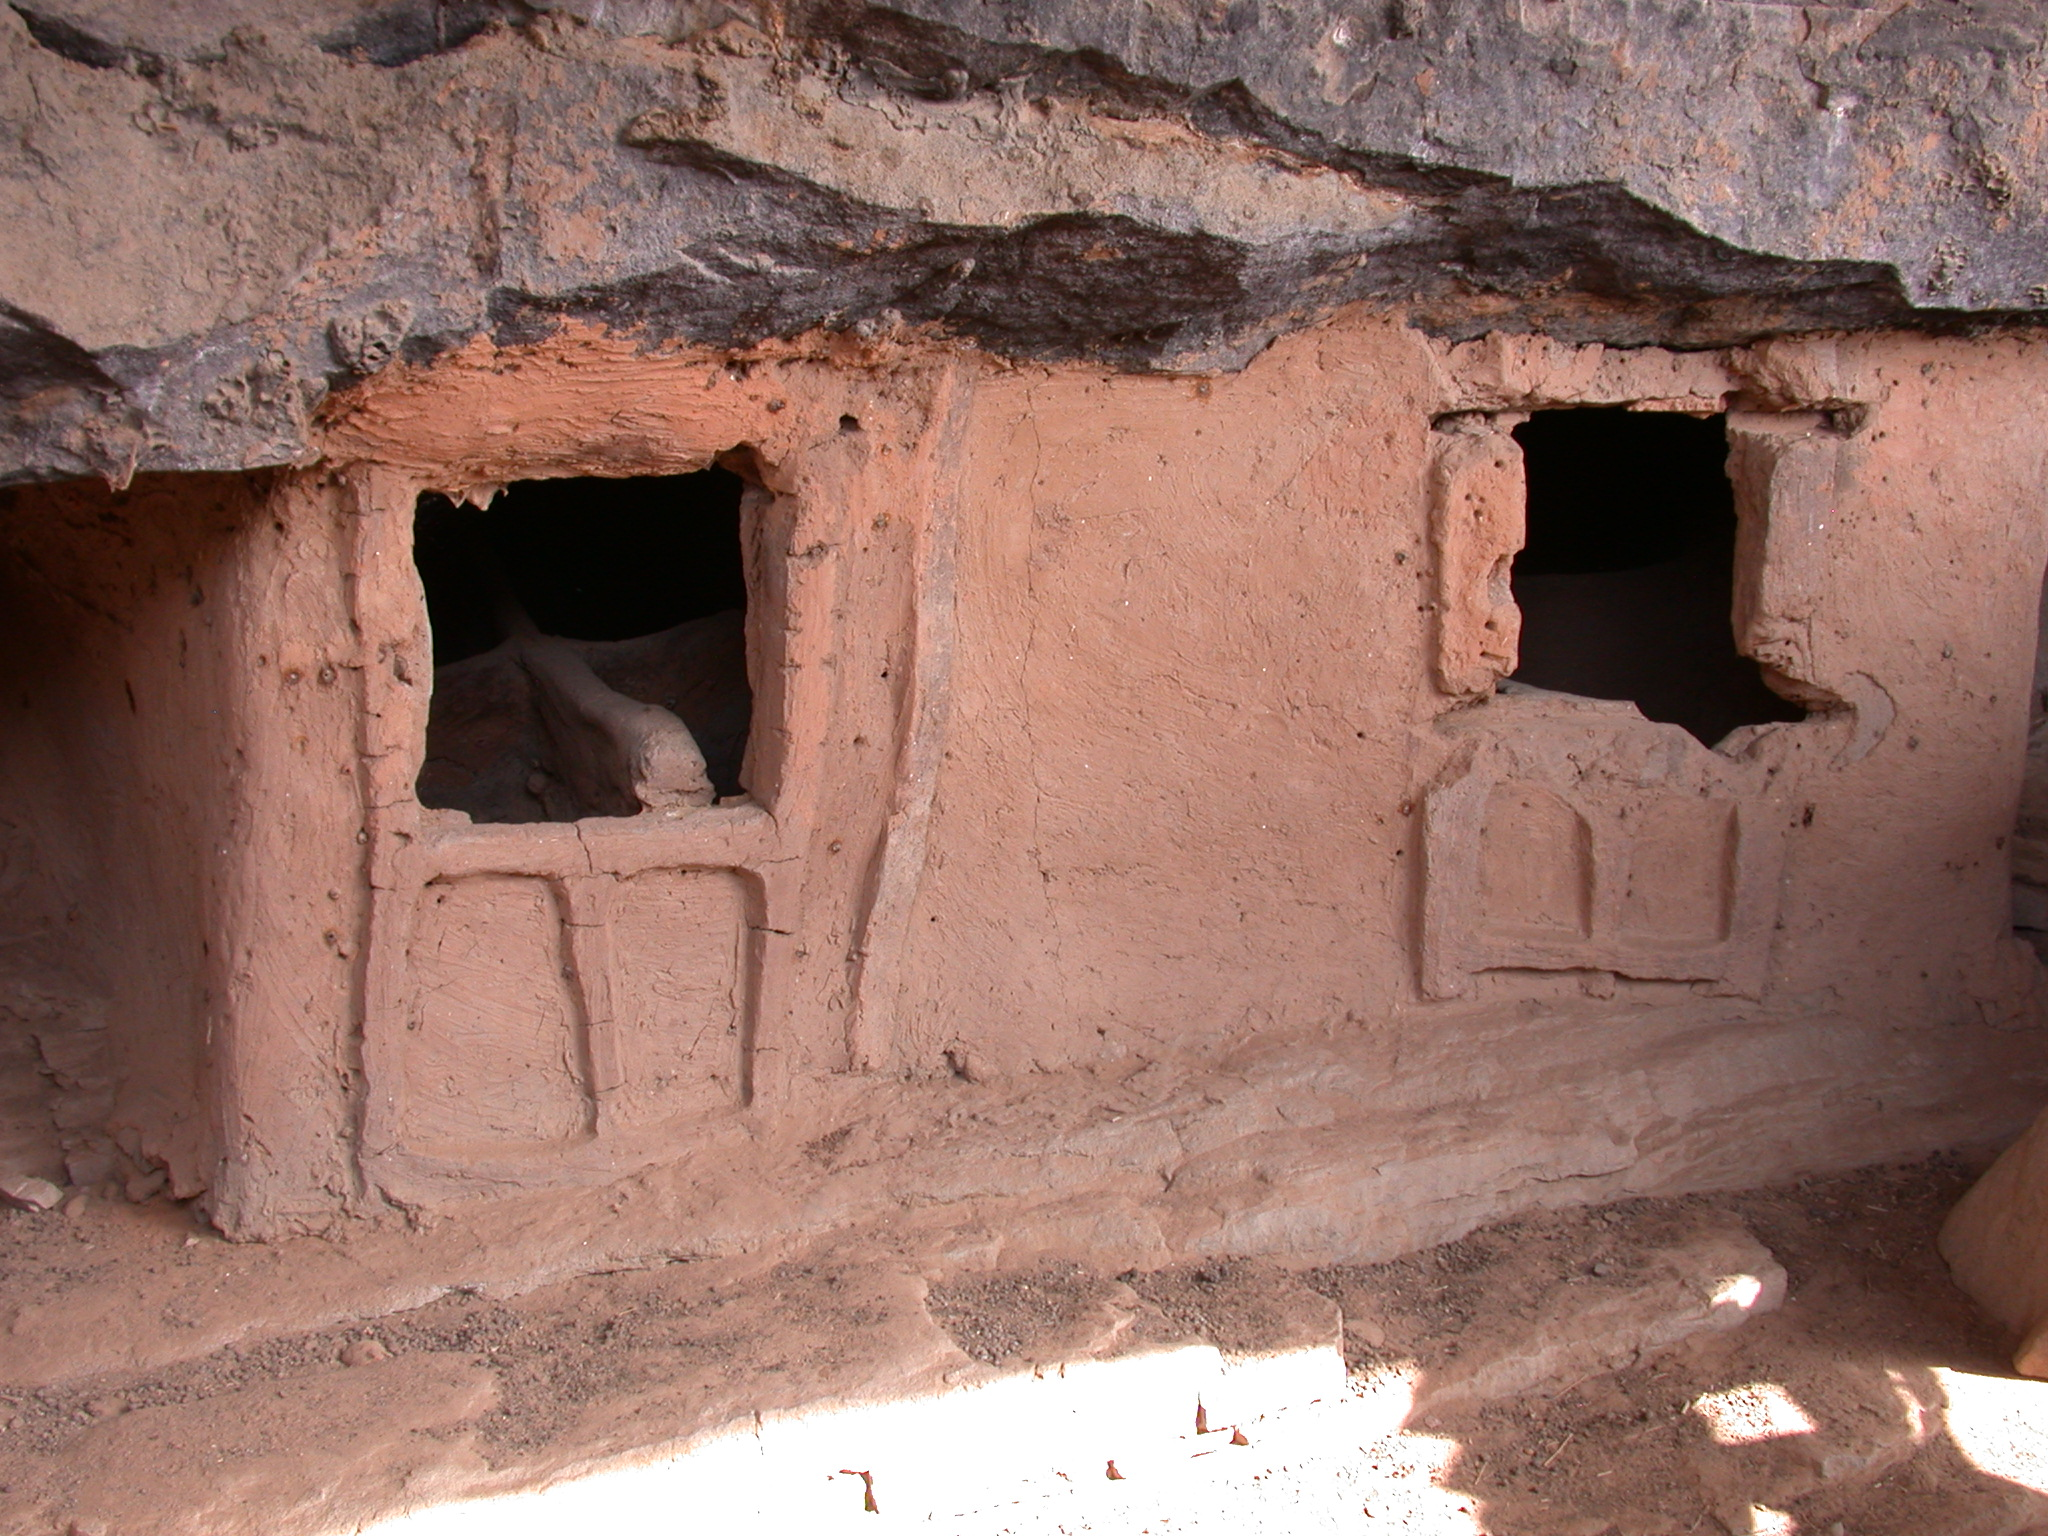 Closeup of Miniature Tellem Dwellings, Tellem Village, Dogon Country, Mali